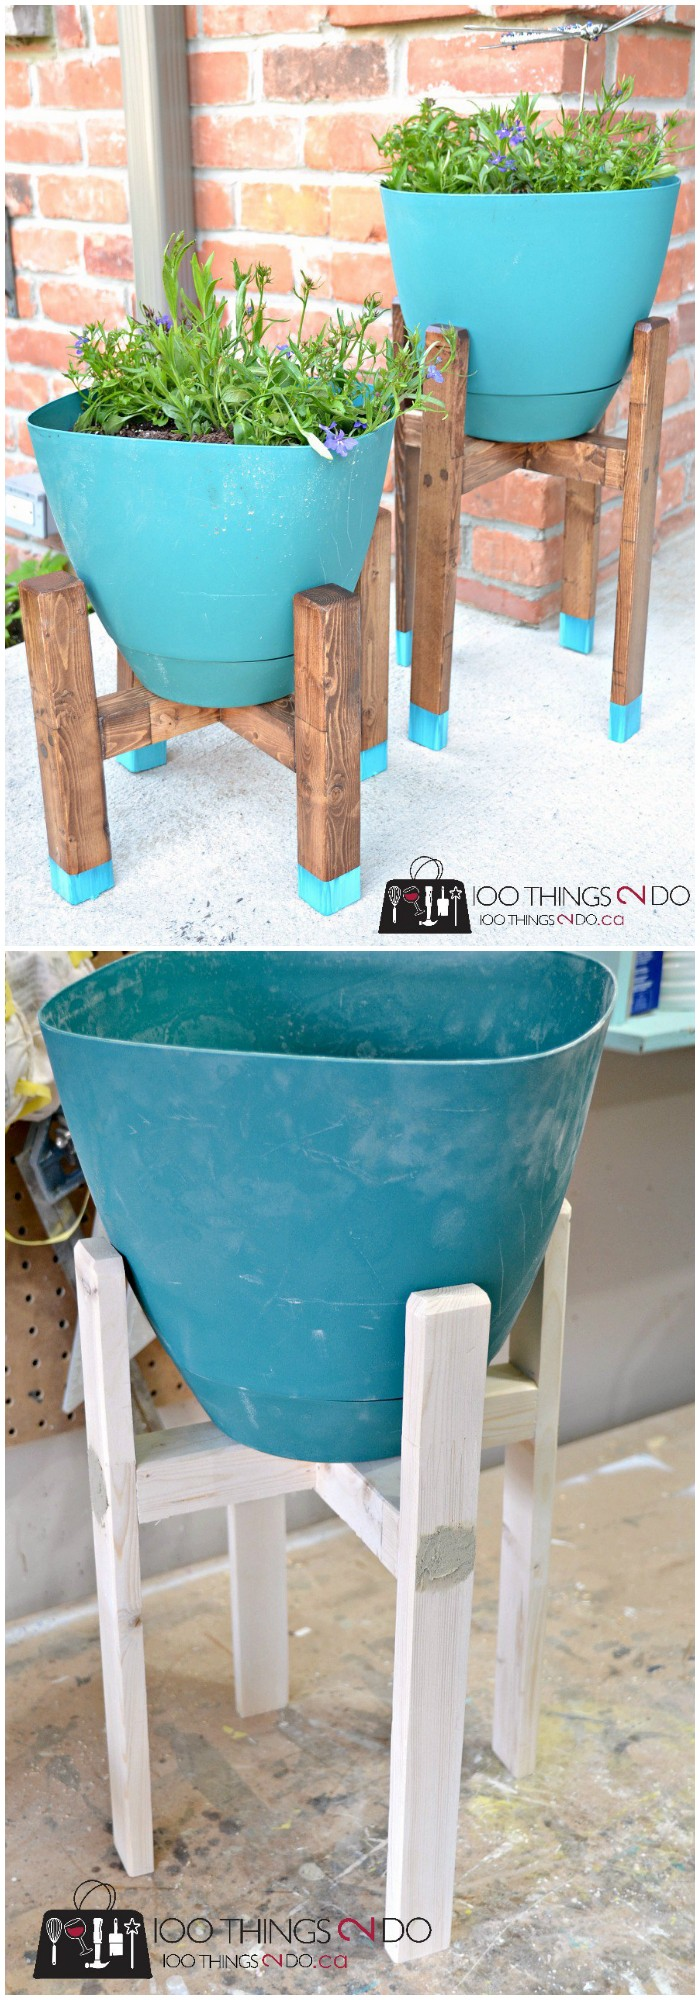 Diy Backyard Projects For Outdoor Beauty Diy Home Decor